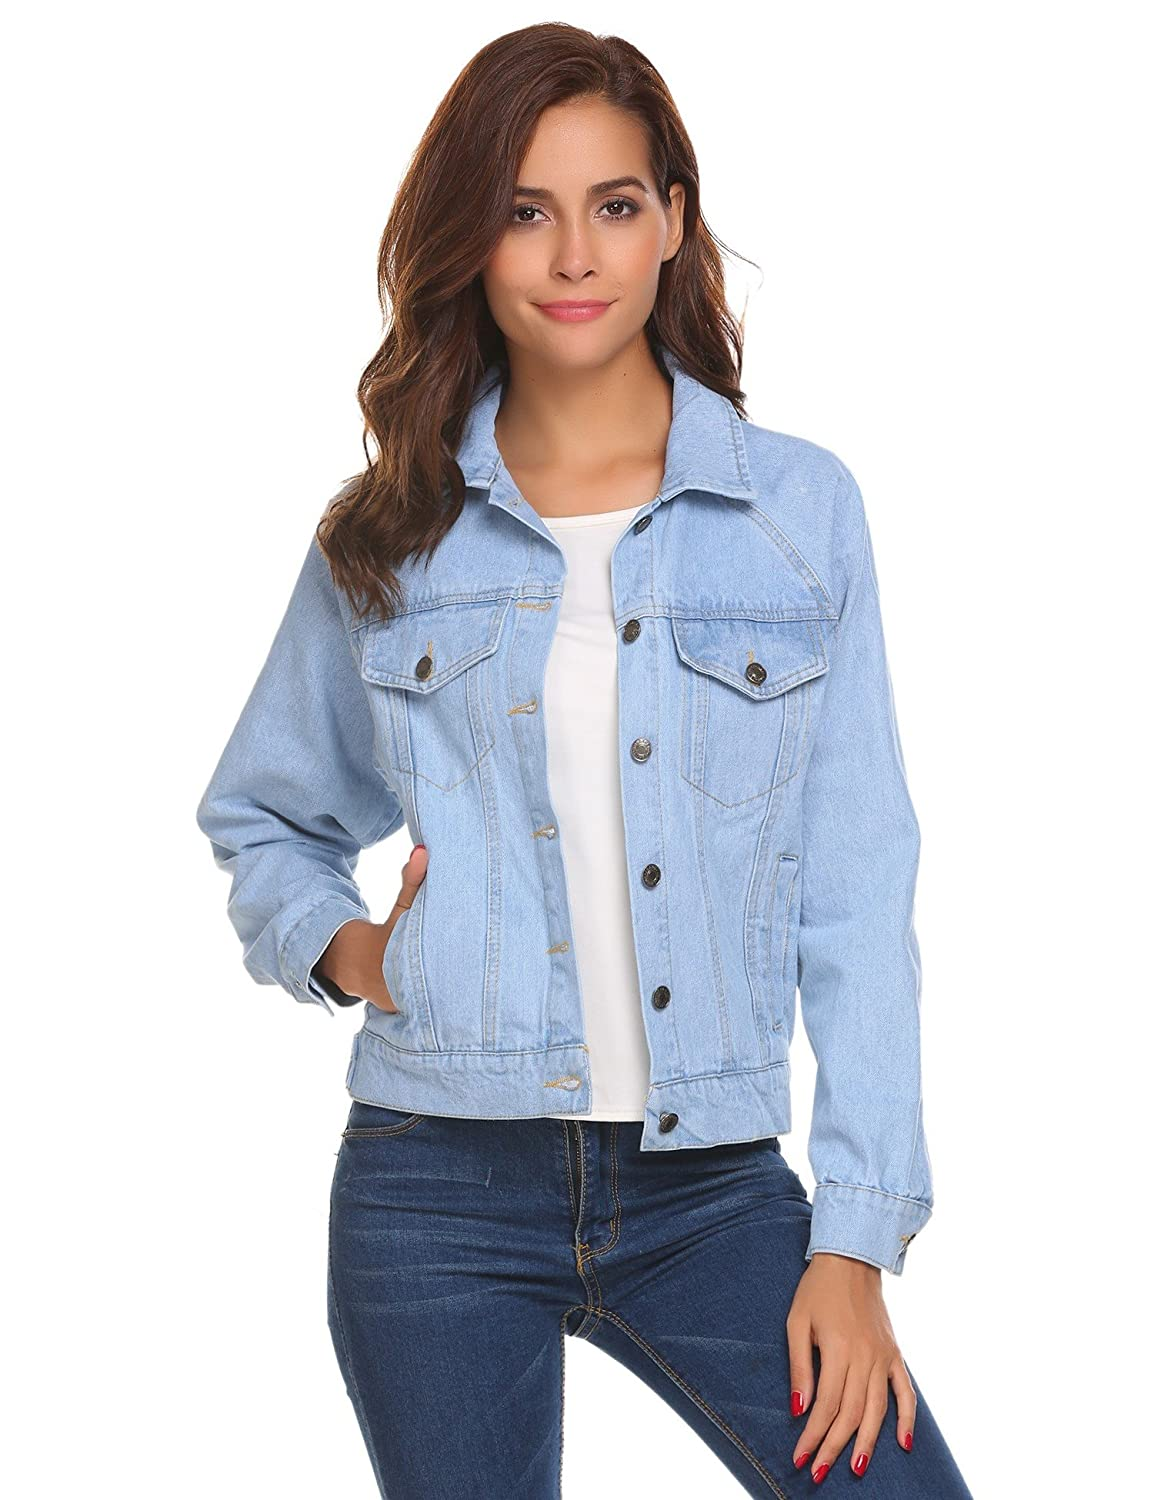 ODlover Womens Basic Denim Jean Jacket Classic Truker Jackets